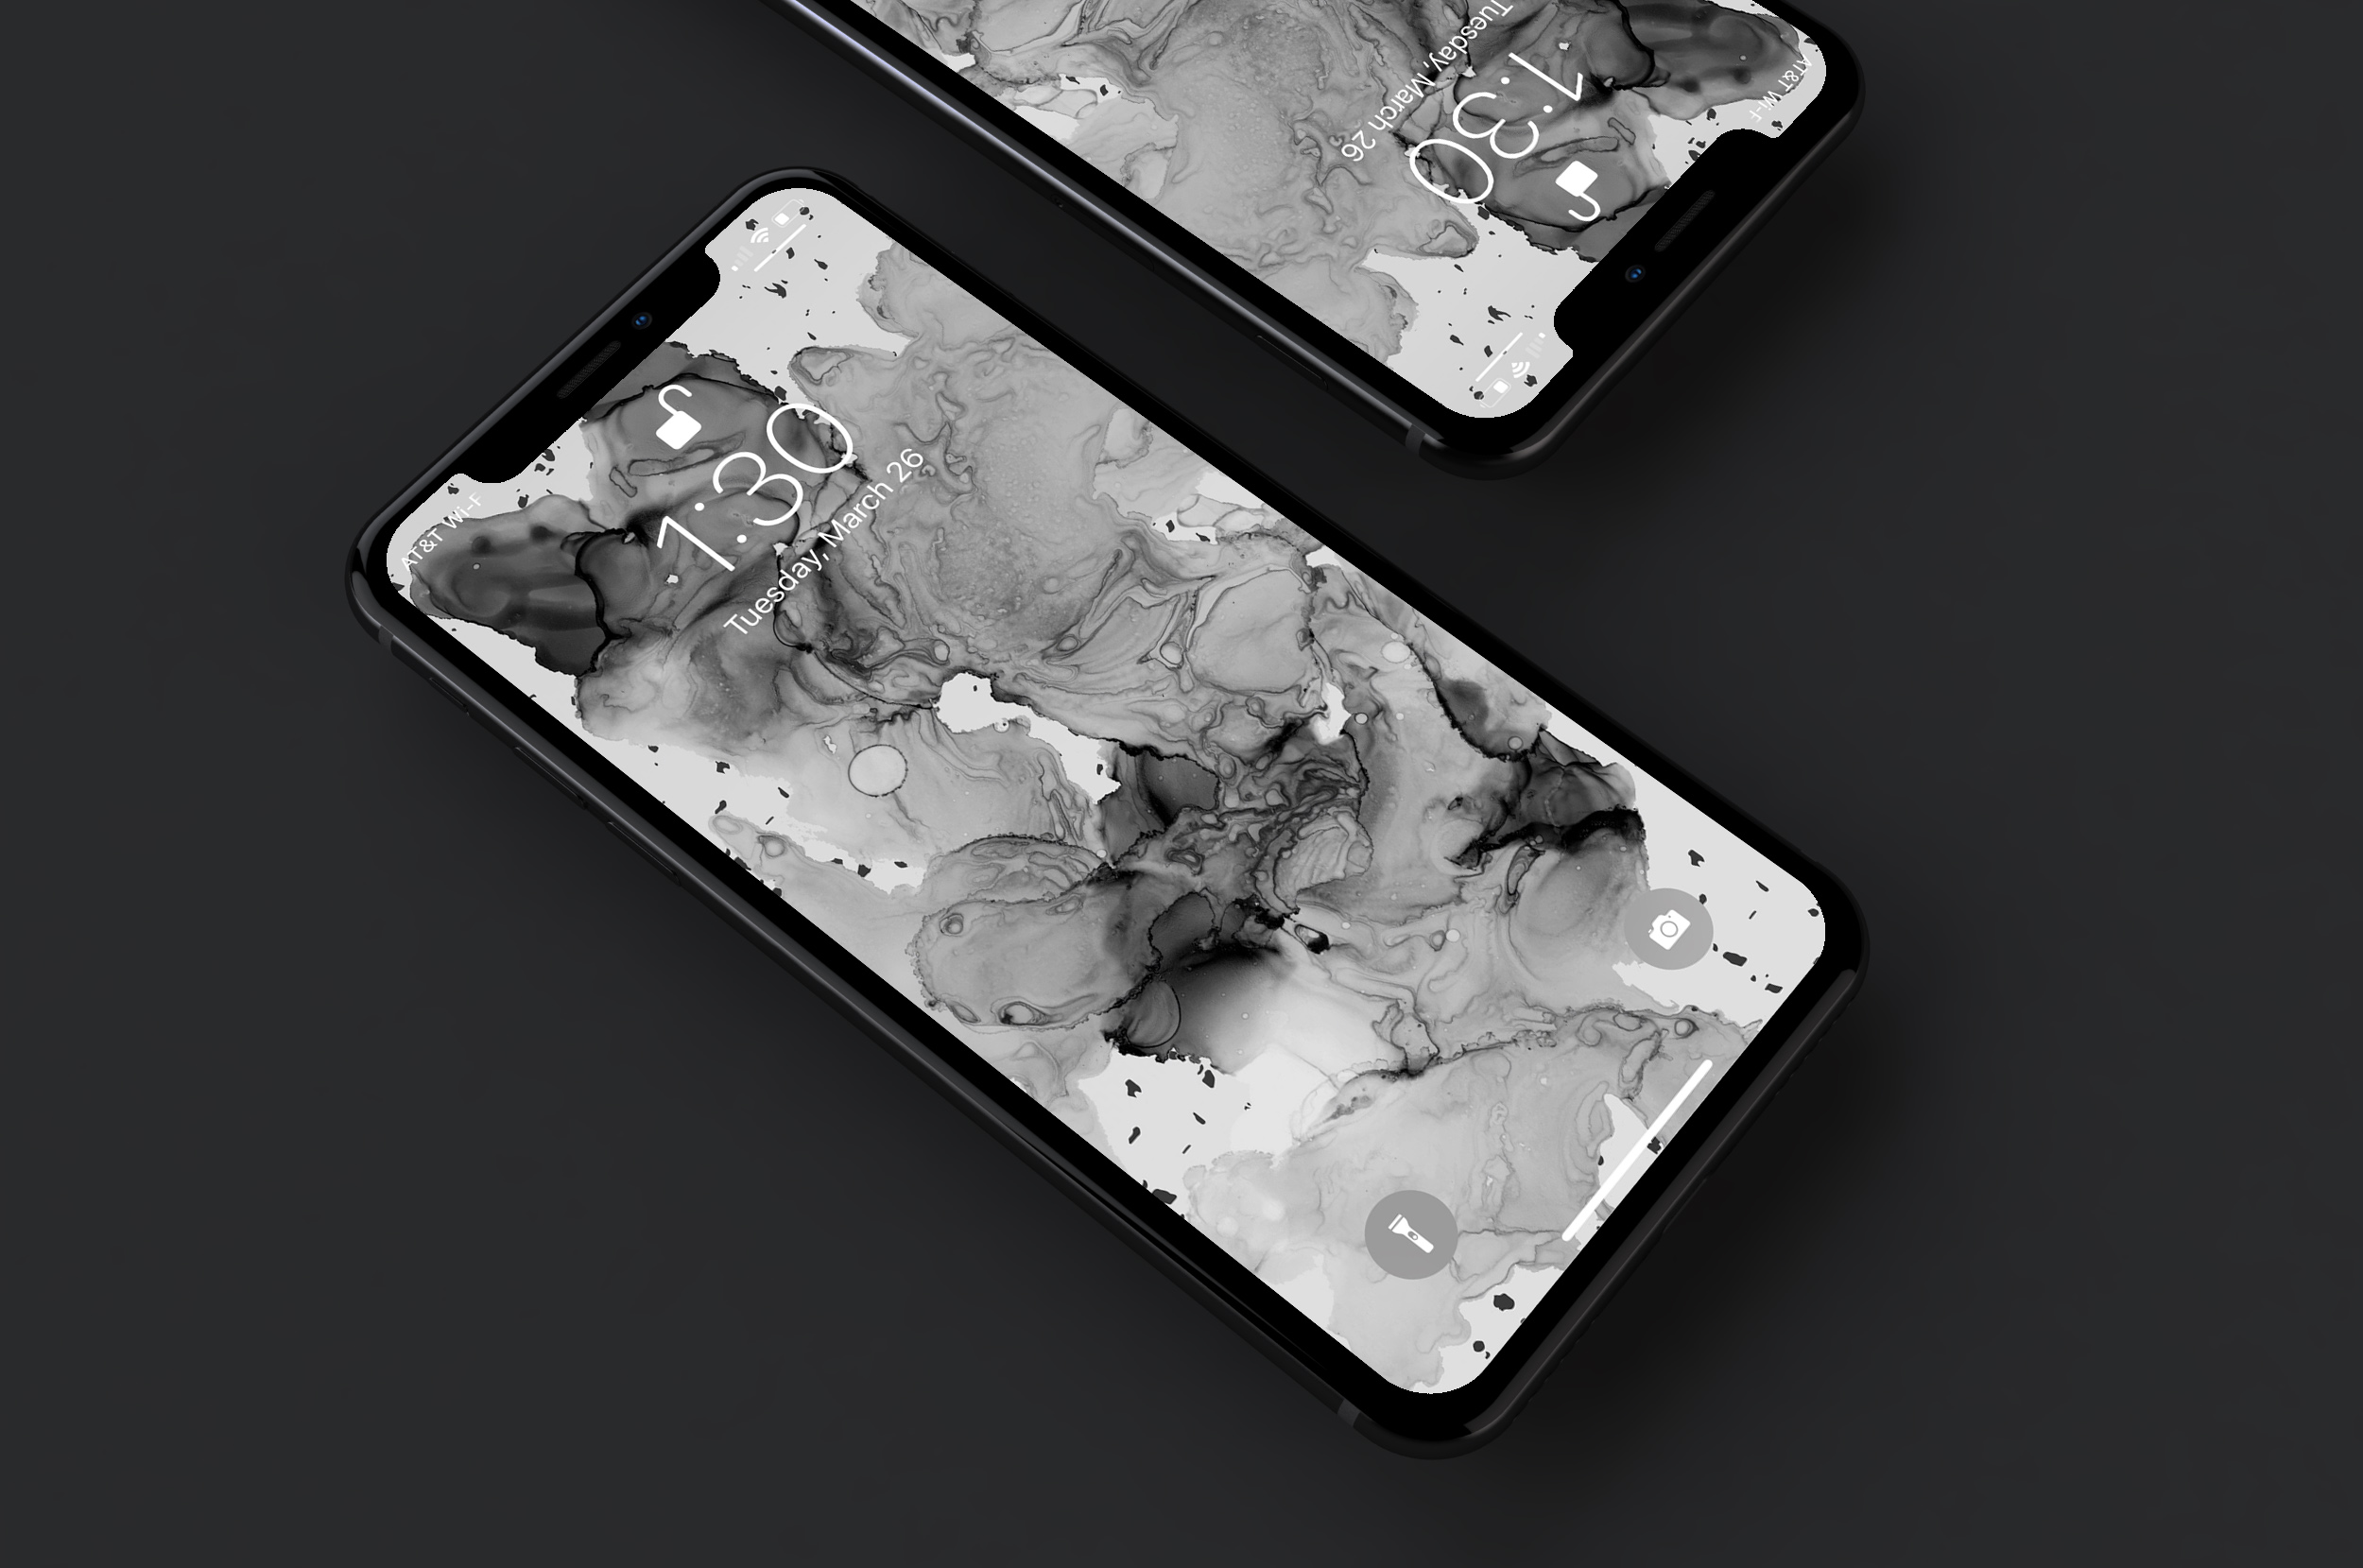 B+W Wallpaper - Original art wallpaper formatted for iPhone X + similar devices. Black and white version.